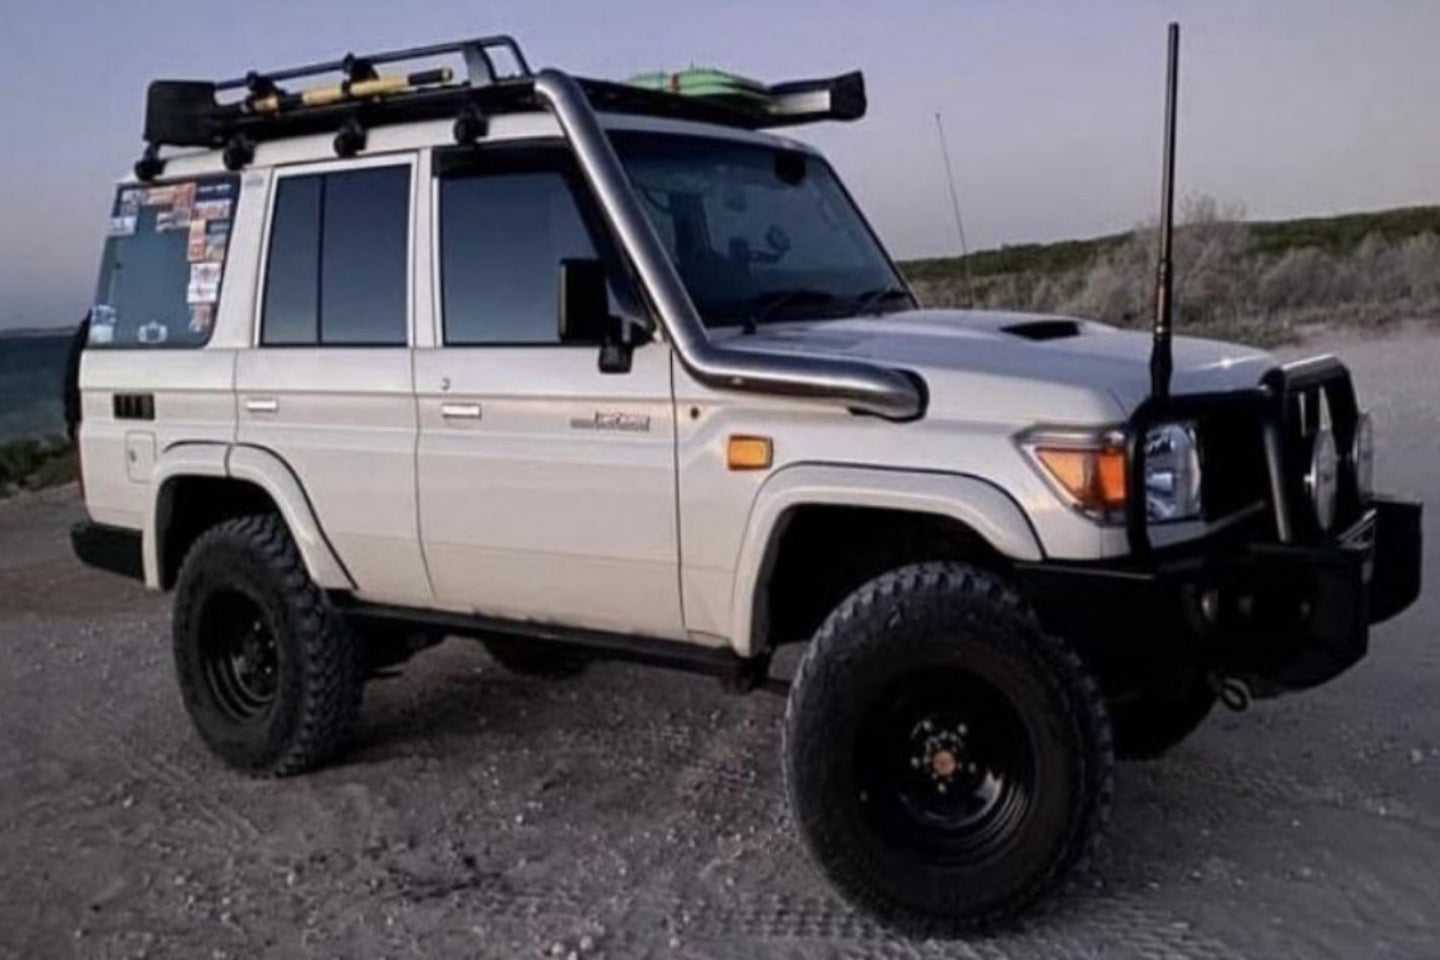 76 Series Landcruiser 4 inch exhaust and snorkel. JMK Industries JMK-Industries.com